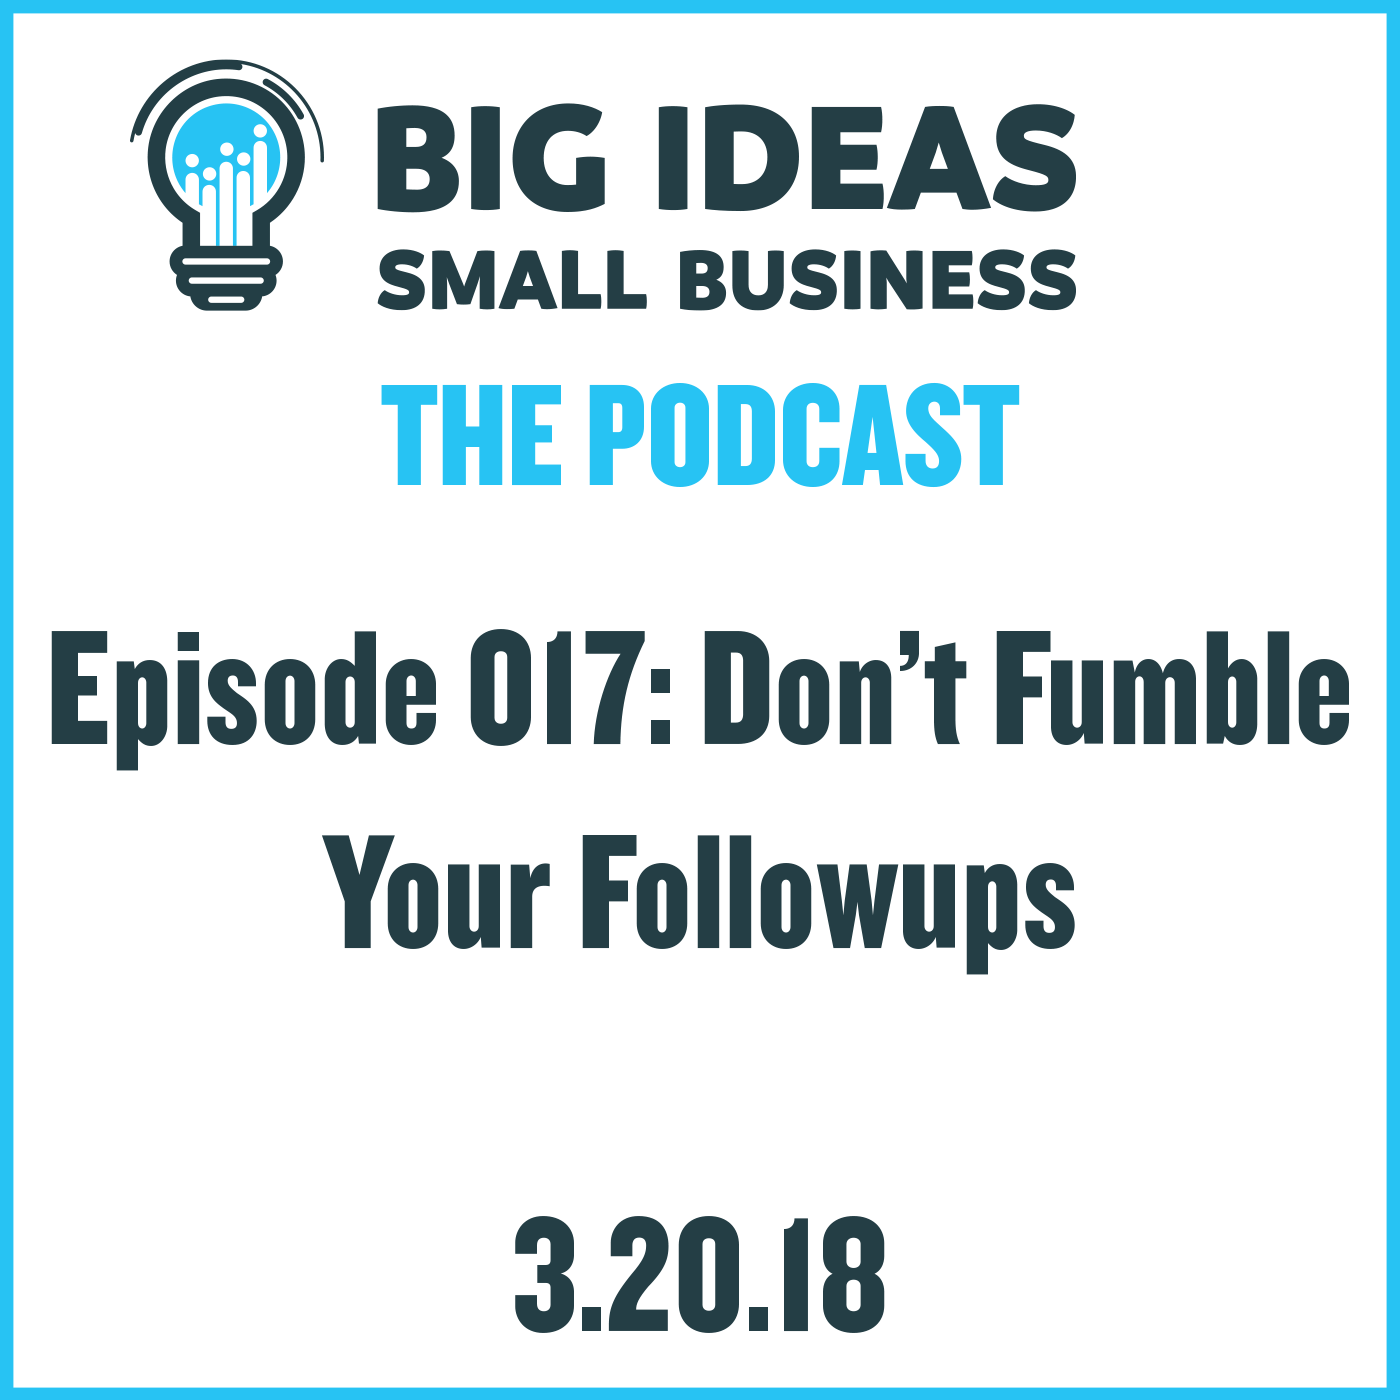 Don't Fumble Your Followups – Big Ideas Small Business Podcast